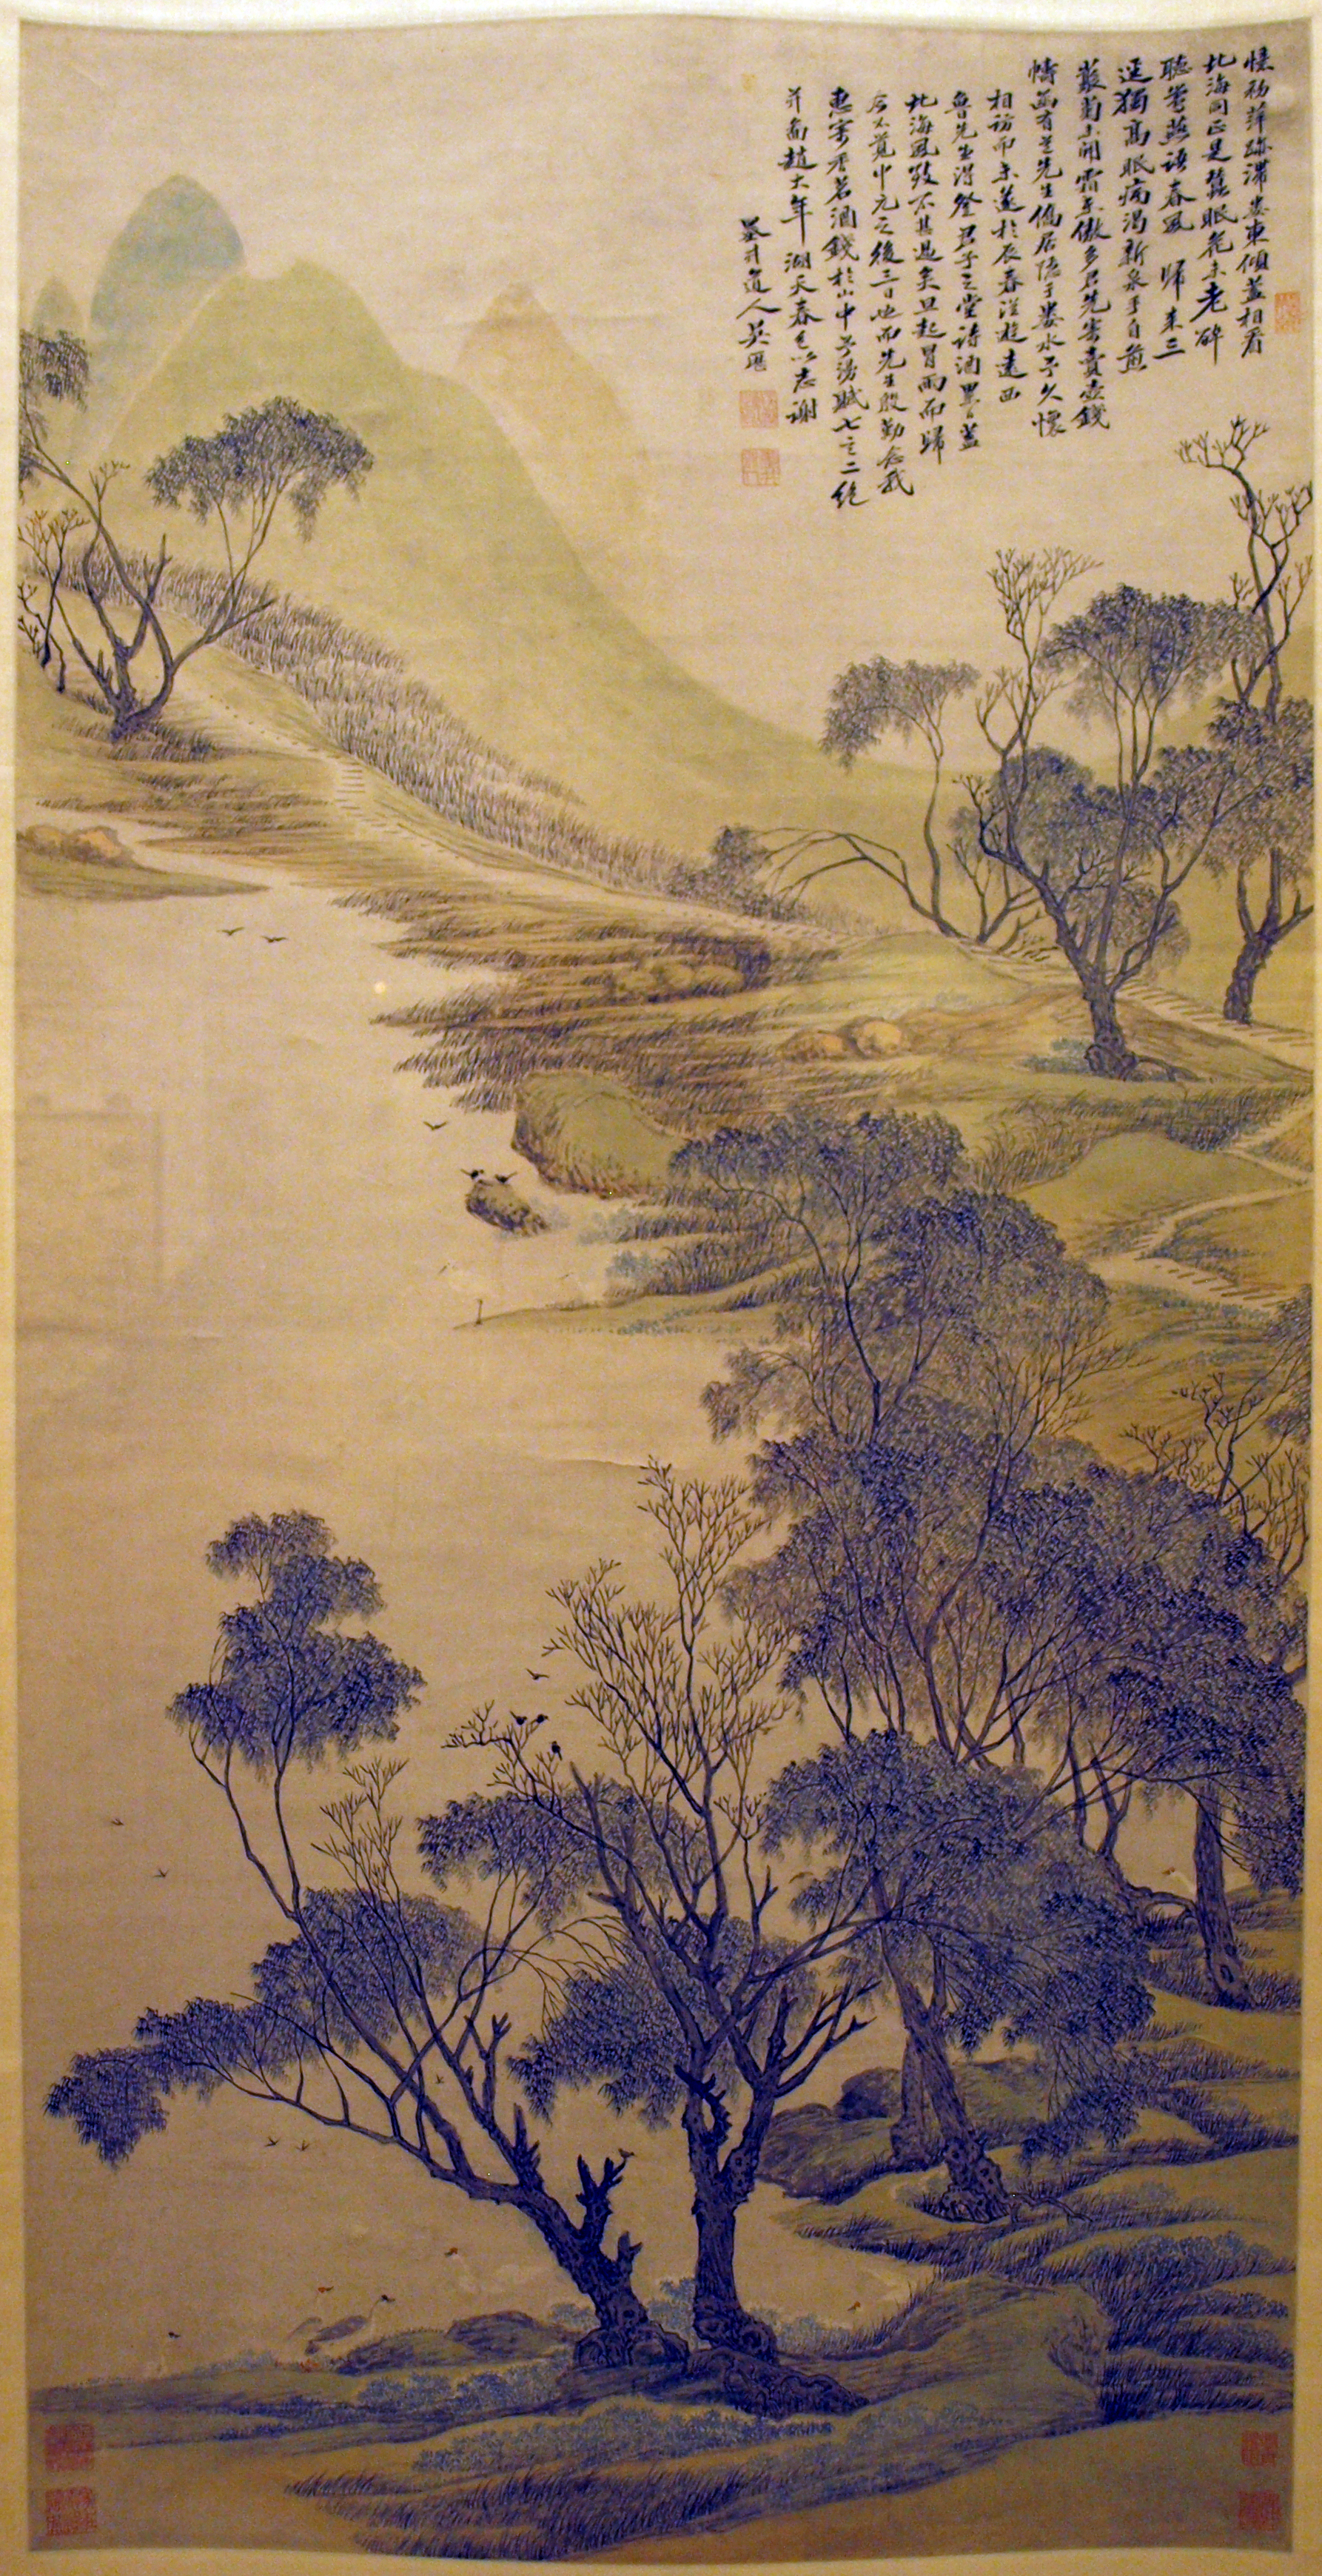 Hanging scroll painting by Wu Li: ''Spring Comes to the Lake'', on display at the [[Shanghai Museum